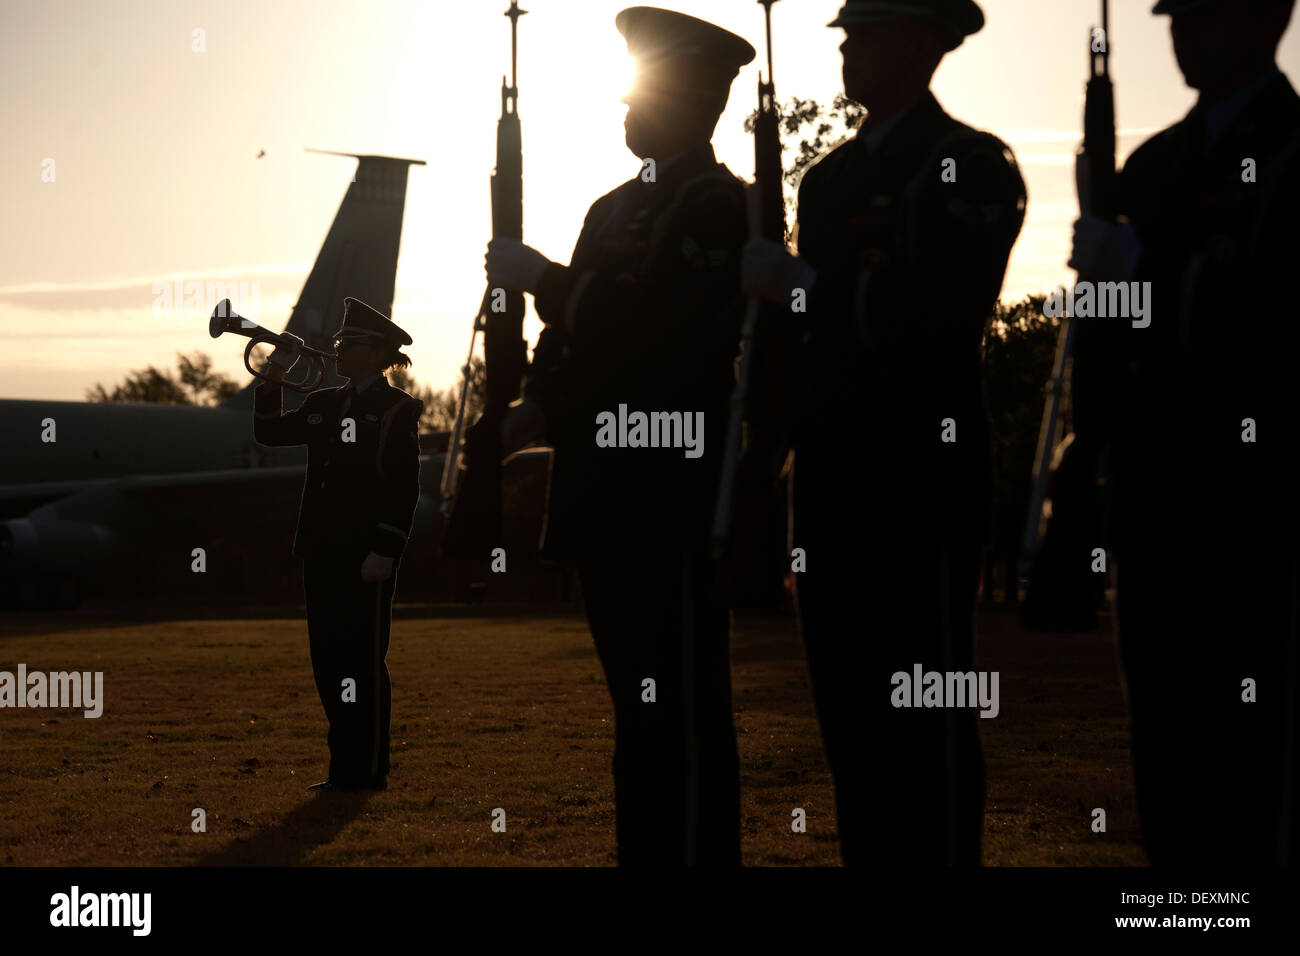 Altus AFB Honor Guard members perform a twenty-one gun salute and a bugle playing of taps during the third annual Prisoners of War and Missing in Action Remembrance Ceremony at the Wings of Freedom Park Sept. 19. This was among several events in remembran - Stock Image